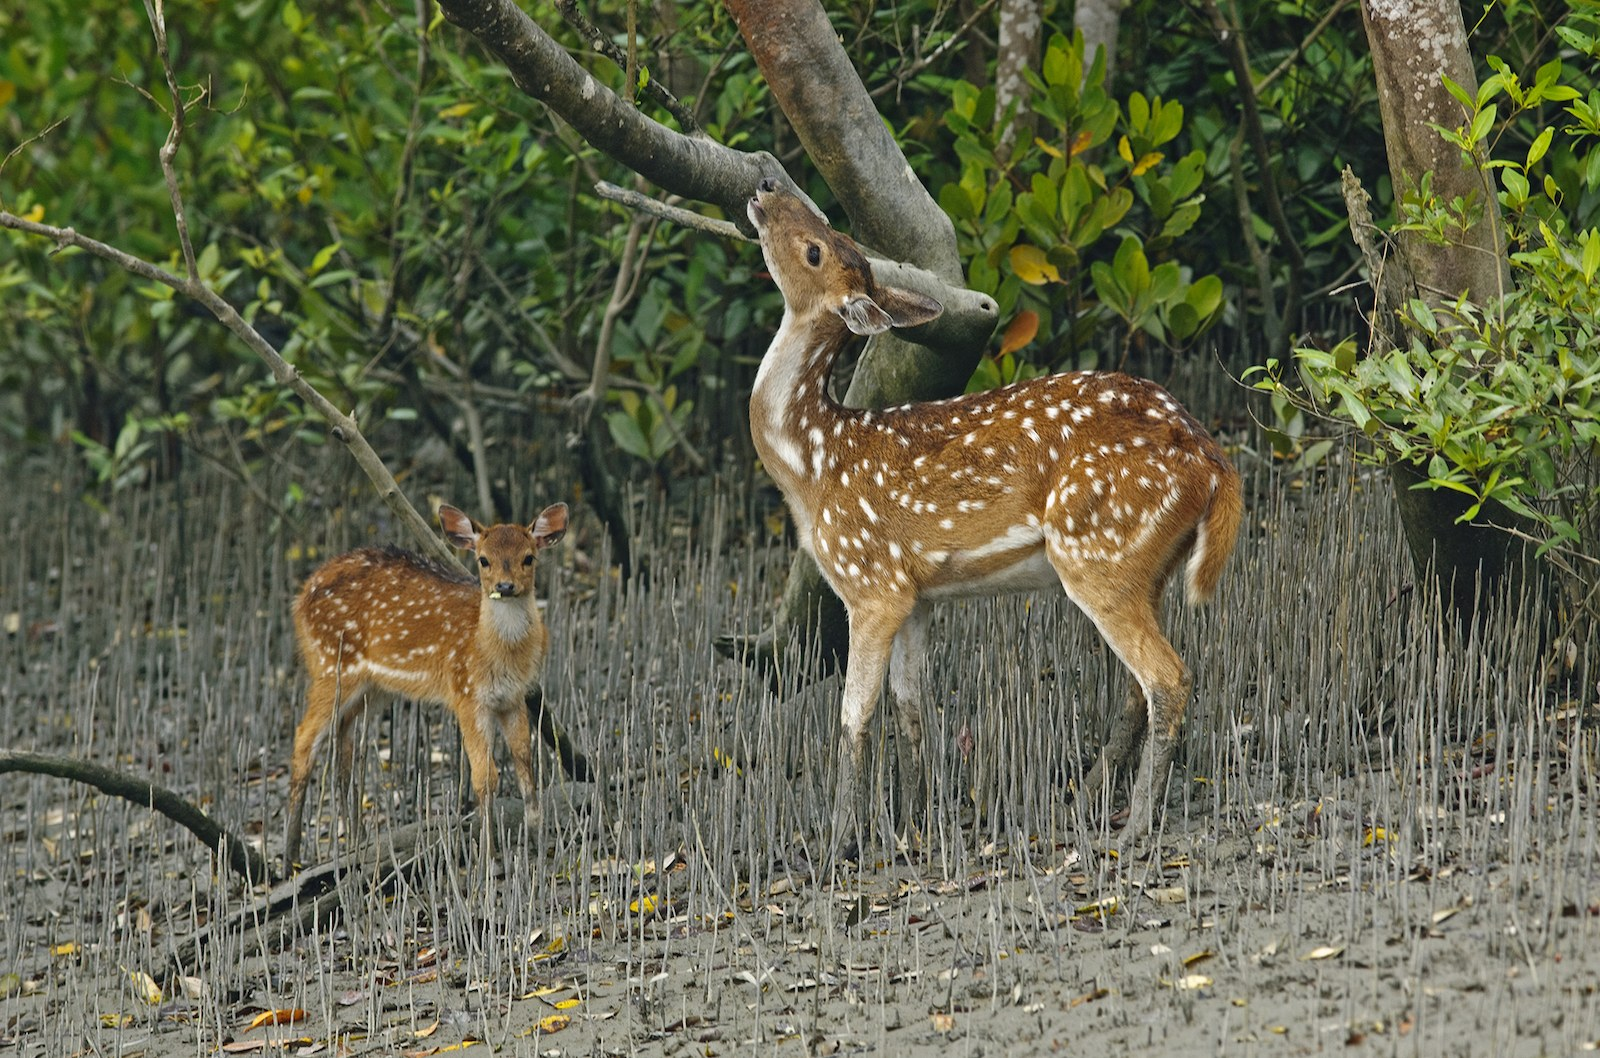 When the tide recedes, spotted deer saunter towards the banks of islands to feed on fresh leaves of mangroves such as Keora and Dhundhul.